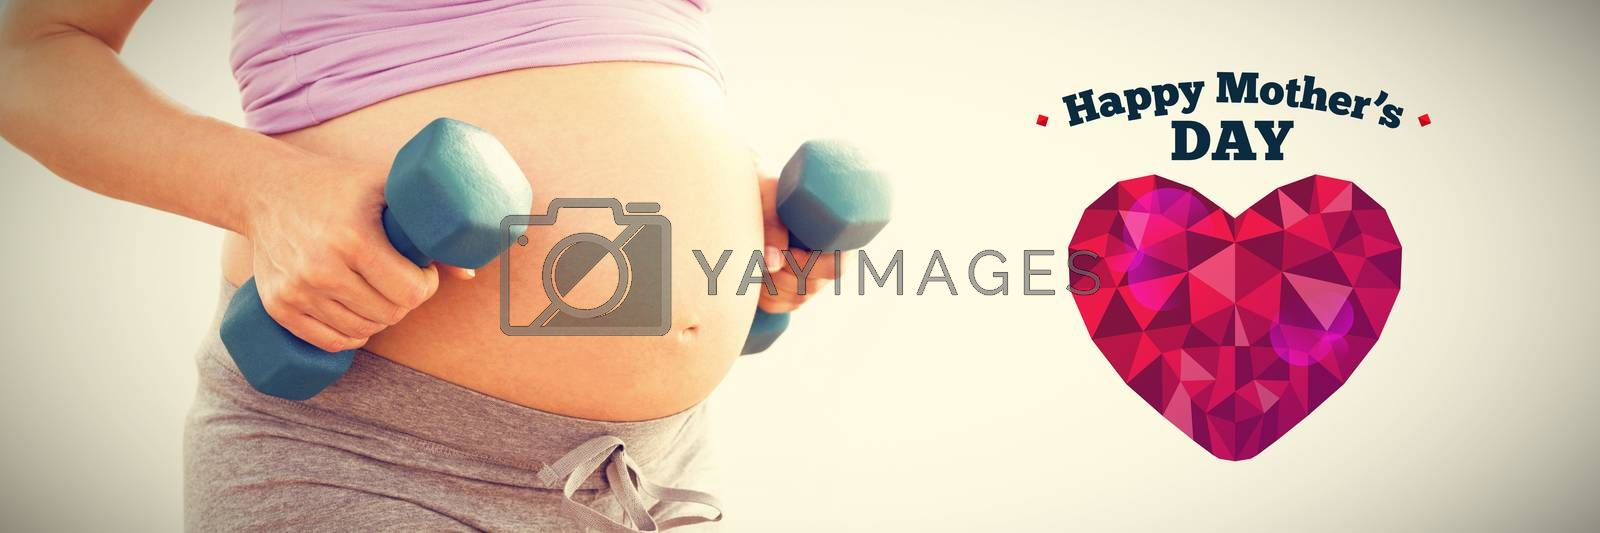 Pregnant woman holding dumbbells  against happy mothers day